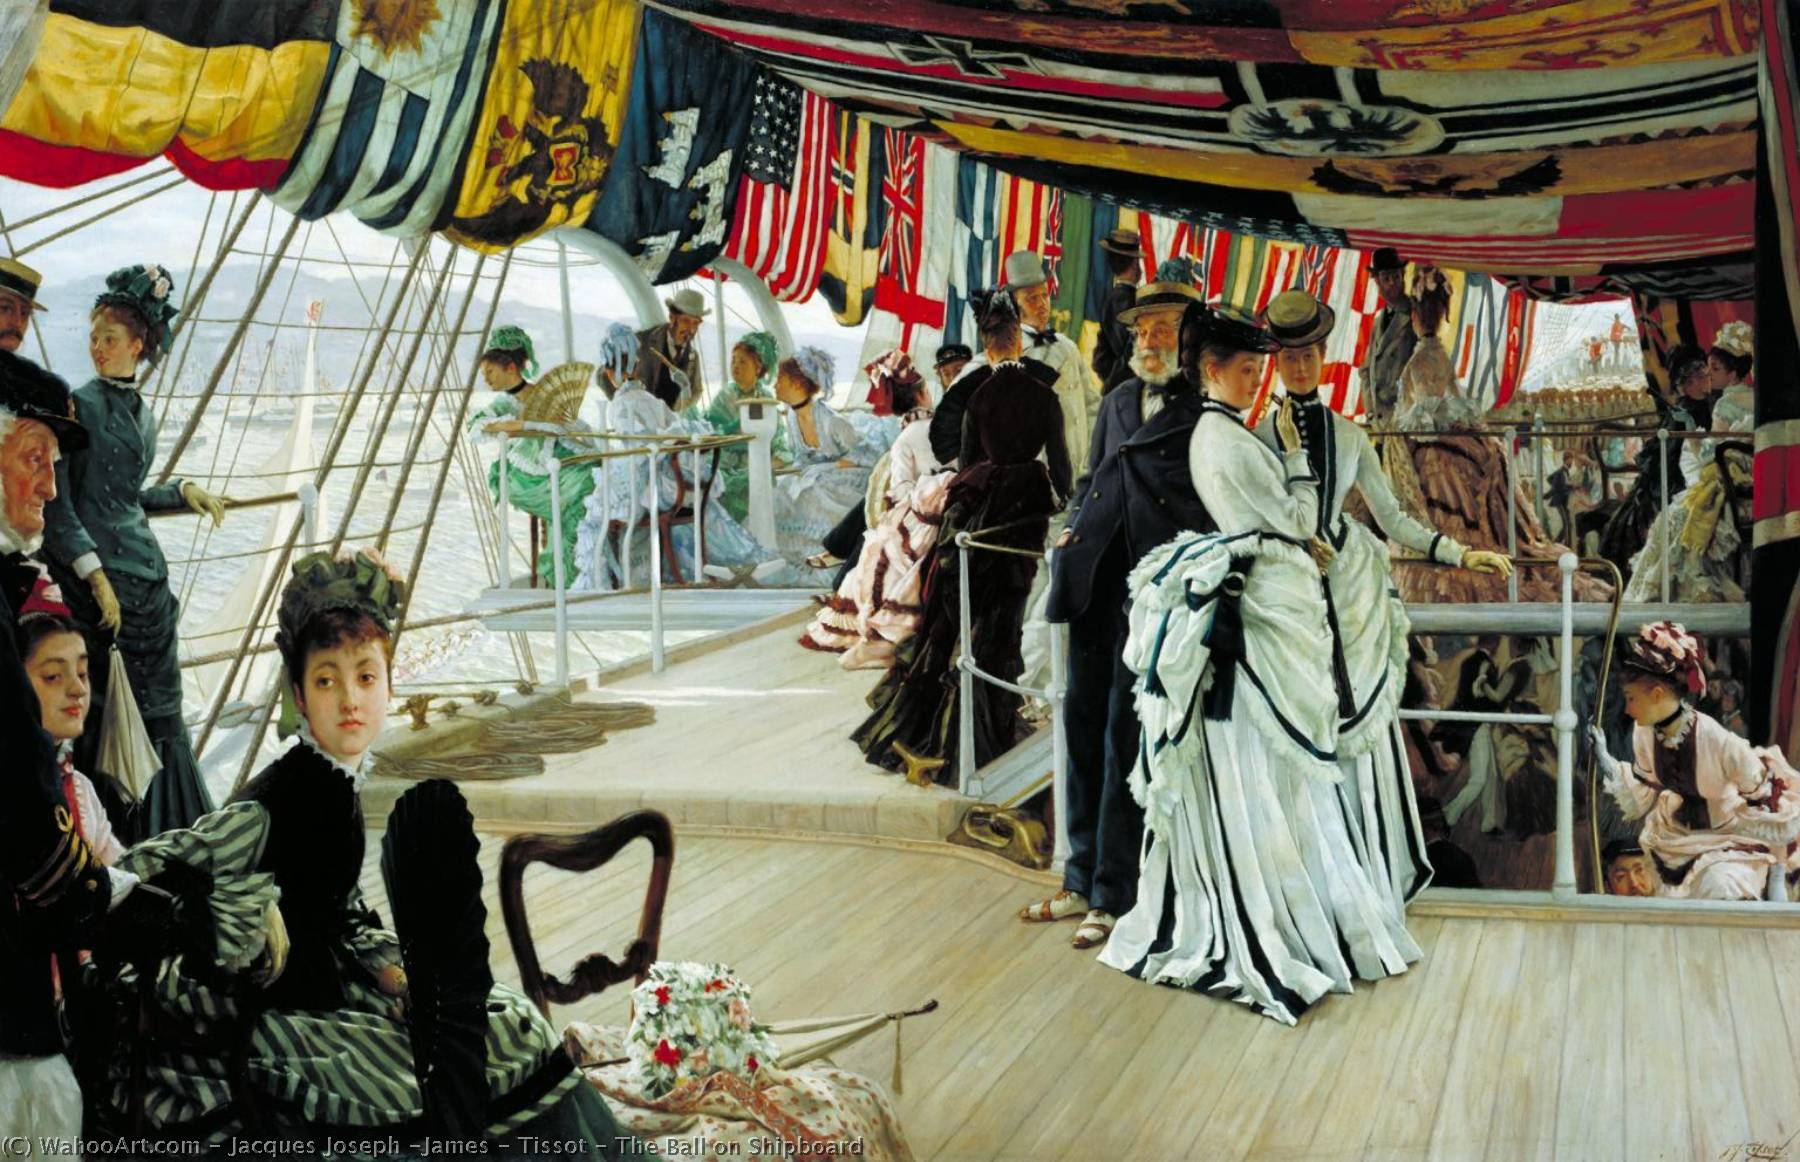 famous painting The Ball on Shipboard of James Jacques Joseph Tissot